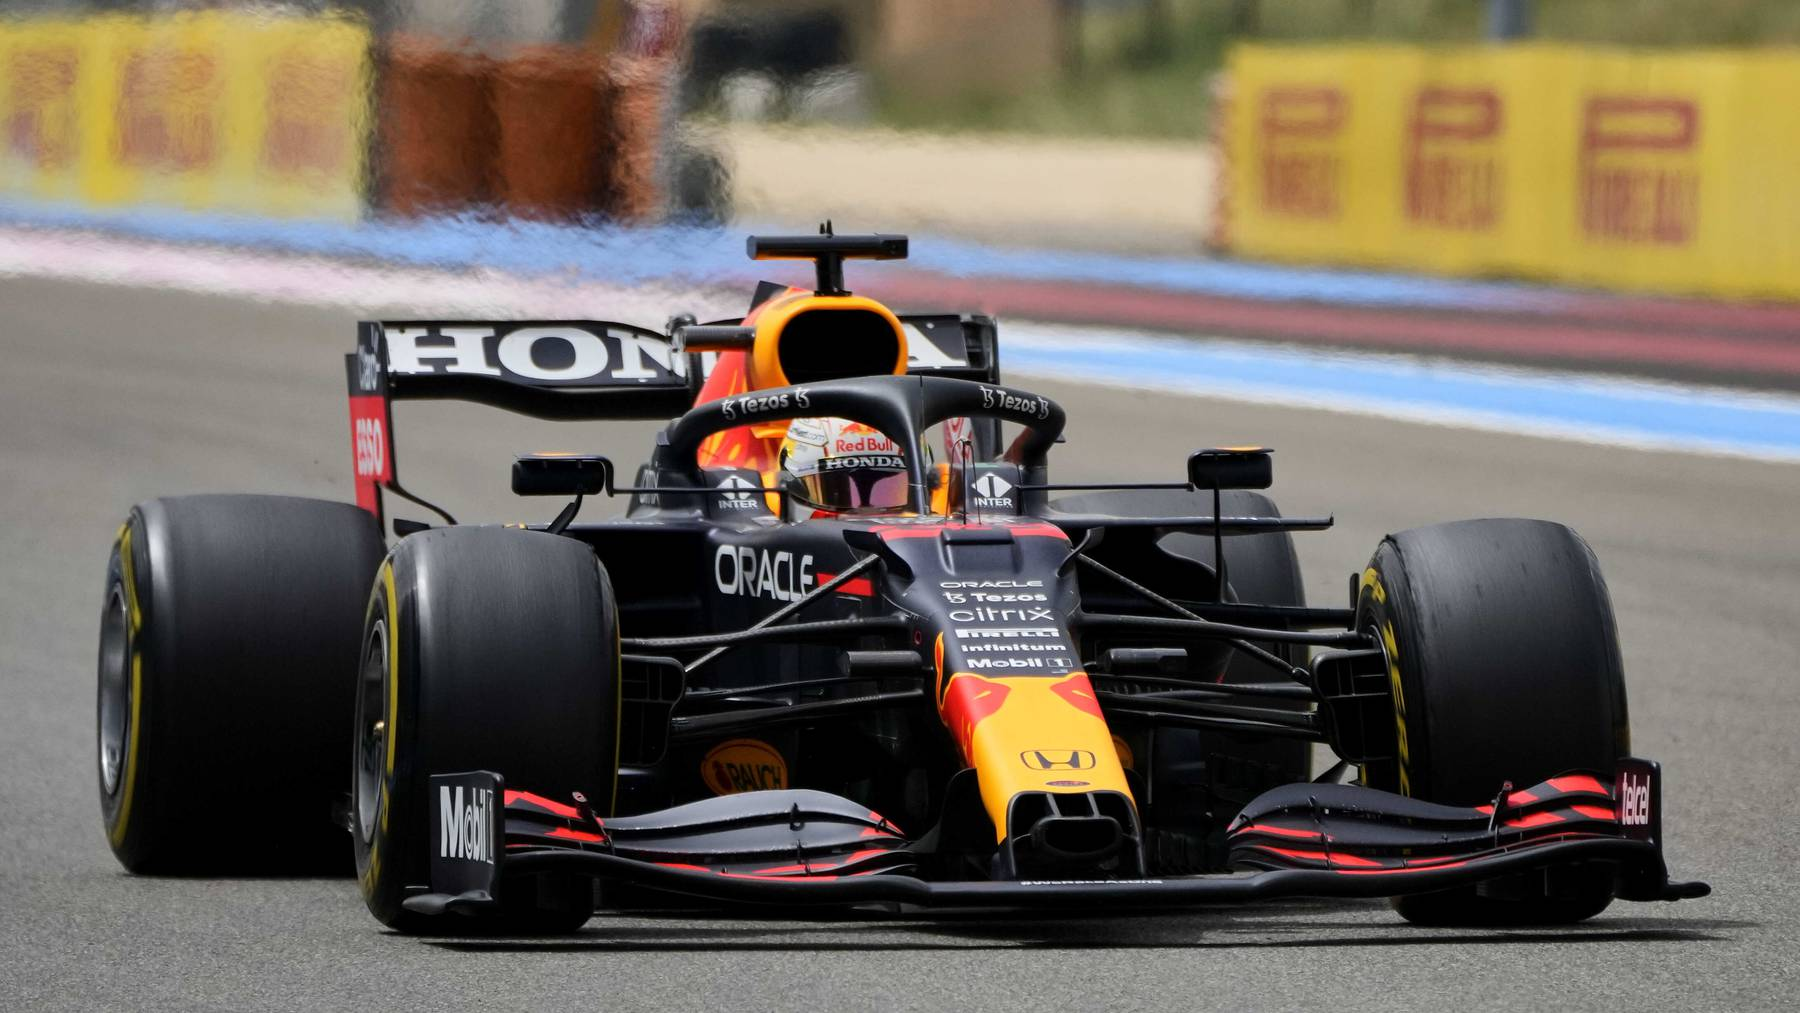 Red Bull driver Max Verstappen of the Netherlands steers his car during the French Formula One Grand Prix at the Paul Ricard racetrack in Le Castellet, southern France, Sunday, June 20, 2021.